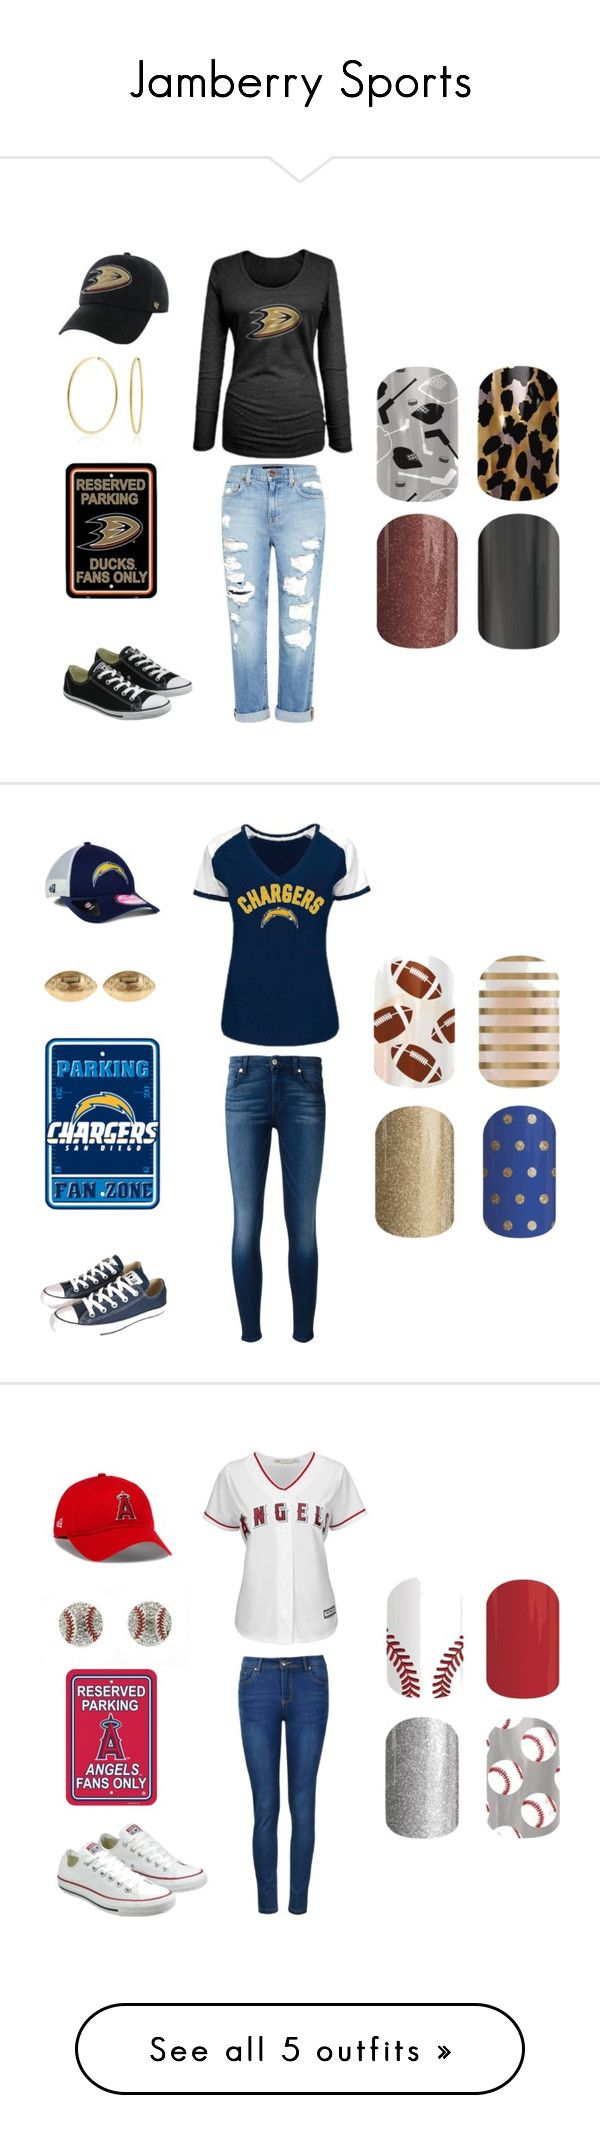 """Jamberry Sports"" by kellie-guravich-medivitz on Polyvore featuring Genetic Denim, Bling Jewelry, Converse, 7 For All Mankind, New Era, Fornash, Ally Fashion, Majestic, adidas and Paige Denim"